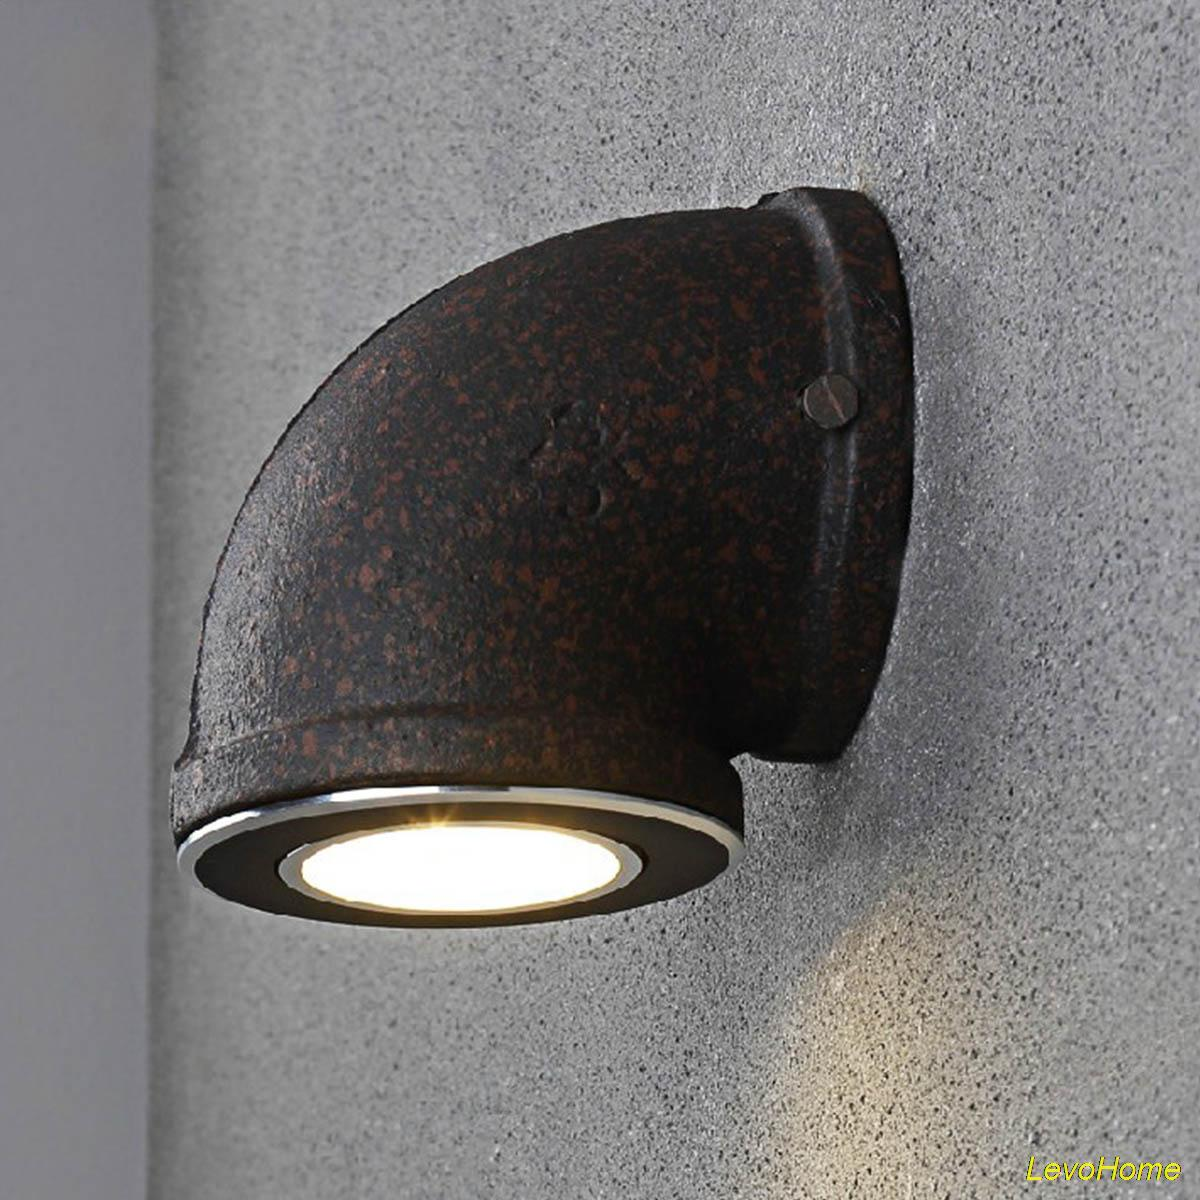 Industrial wall lamp water pipe wall sconces black led vintage industrial wall lamp water pipe wall sconces black led vintage wall light american village wall lamp bar lighting decor in wall lamps from lights lighting amipublicfo Image collections